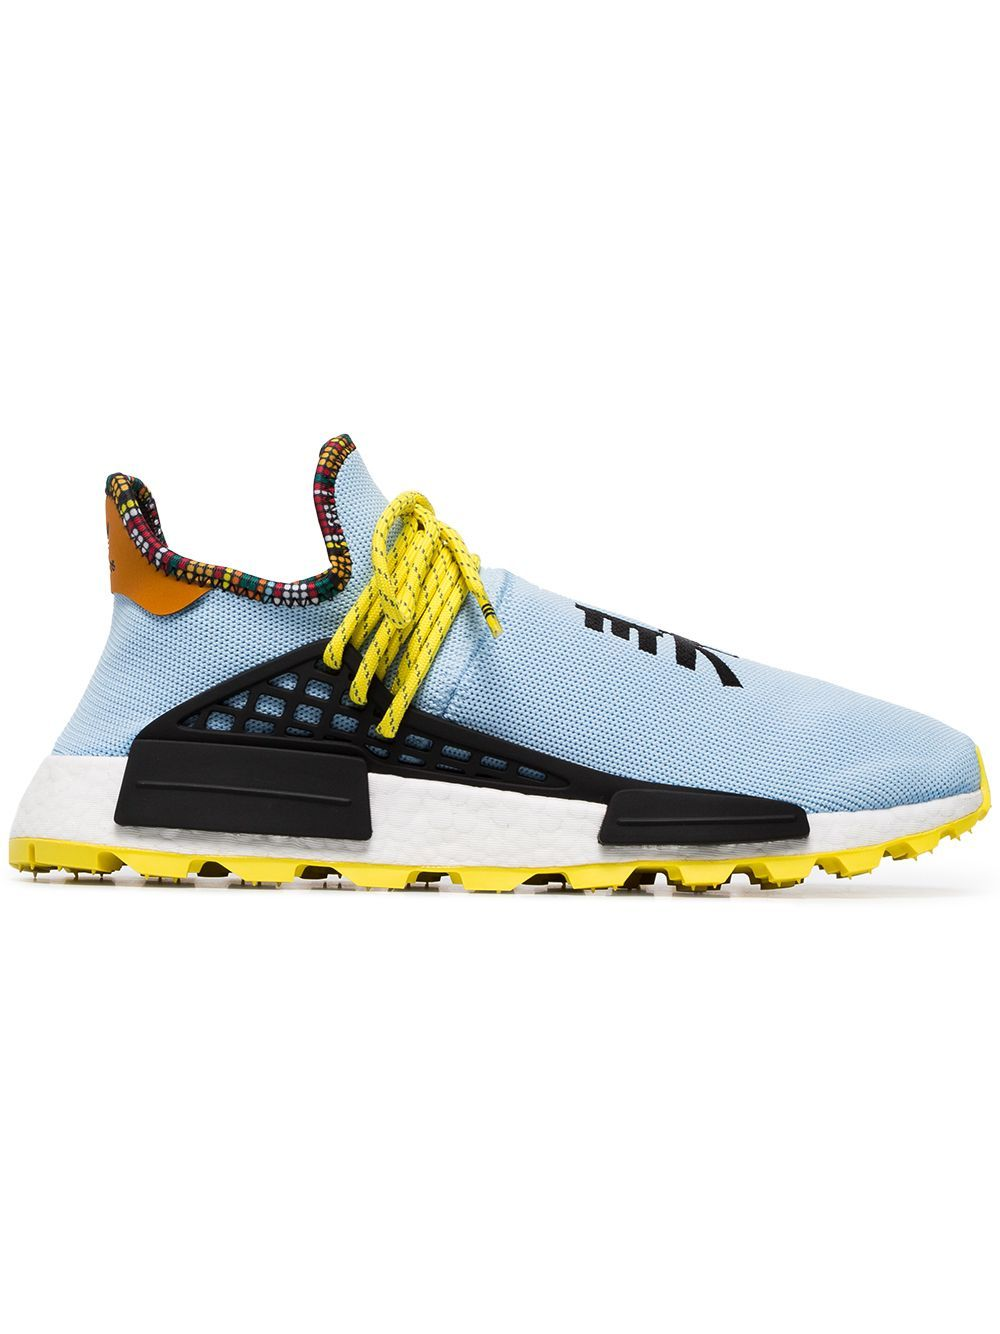 43ee825af ADIDAS ORIGINALS ADIDAS X PHARRELL WILLIAMS MULTICOLOURED HUMAN BODY NMD  SNEAKERS - 蓝色.  adidasoriginals  shoes